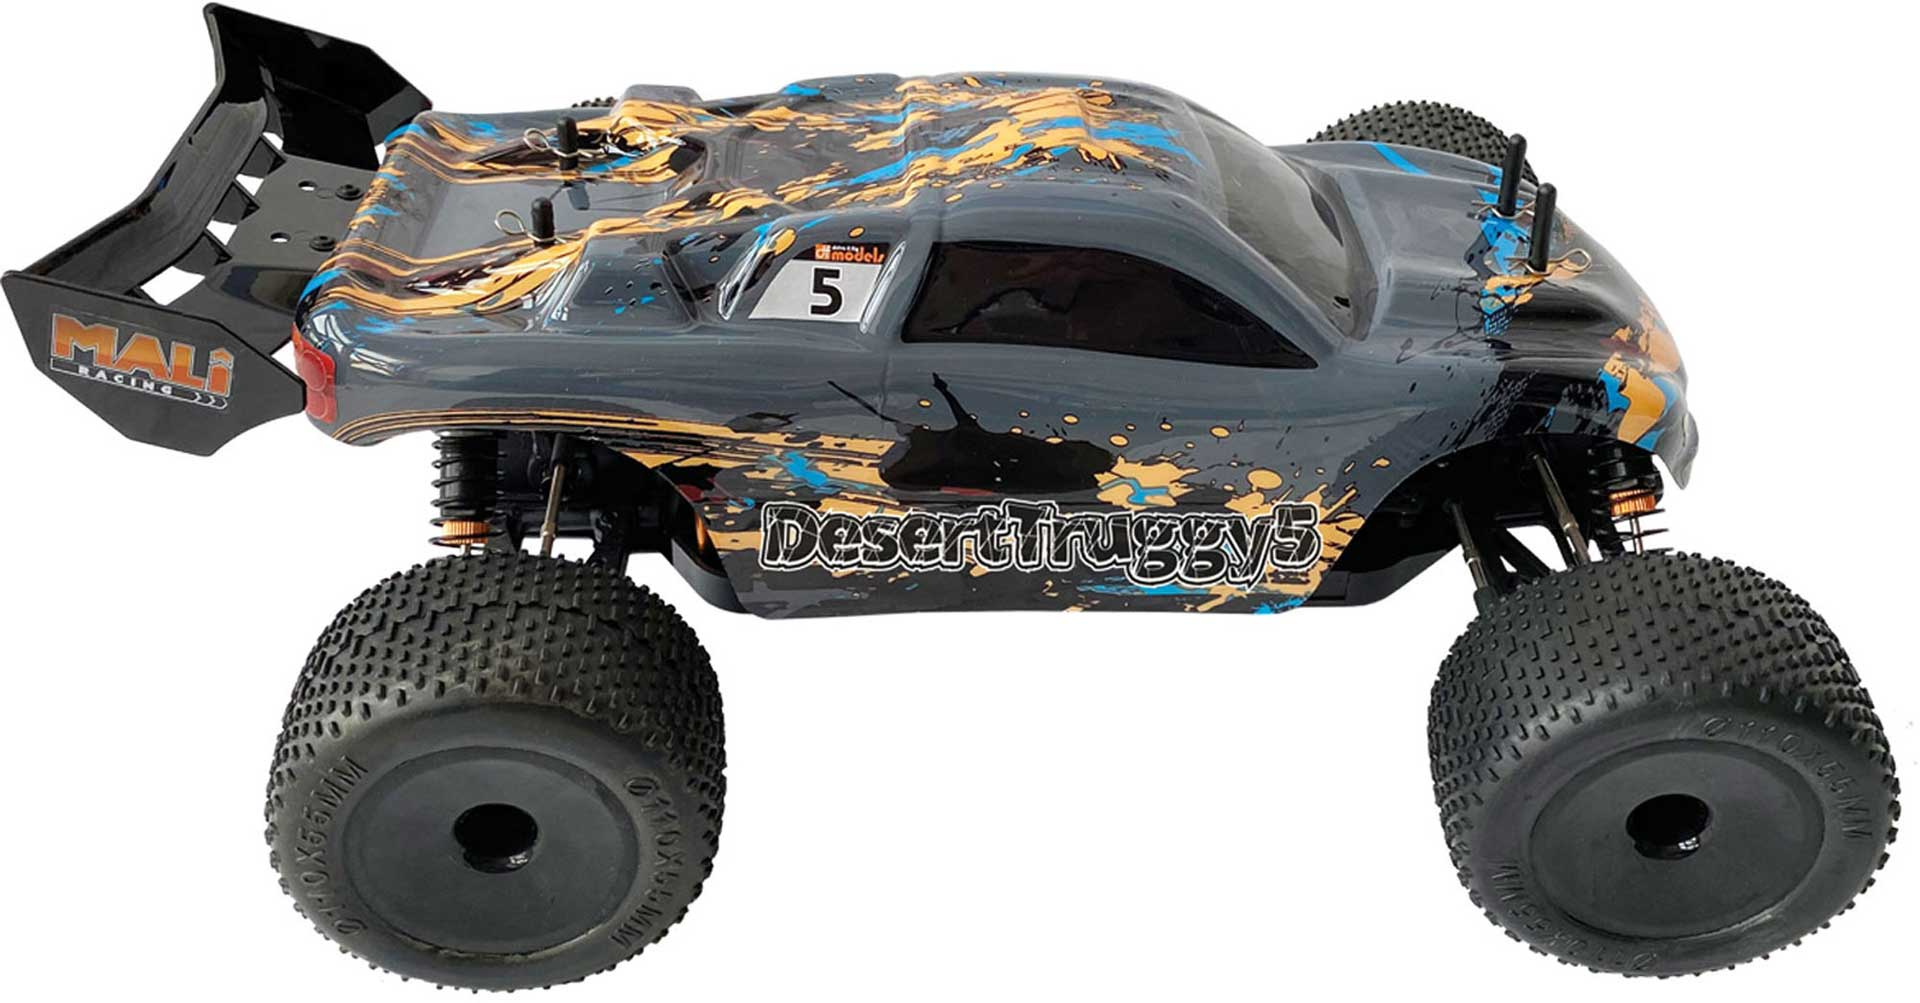 DRIVE & FLY MODELS DESERT TRUGGY 5 TRUGGY BRUSHED RTR 1/10